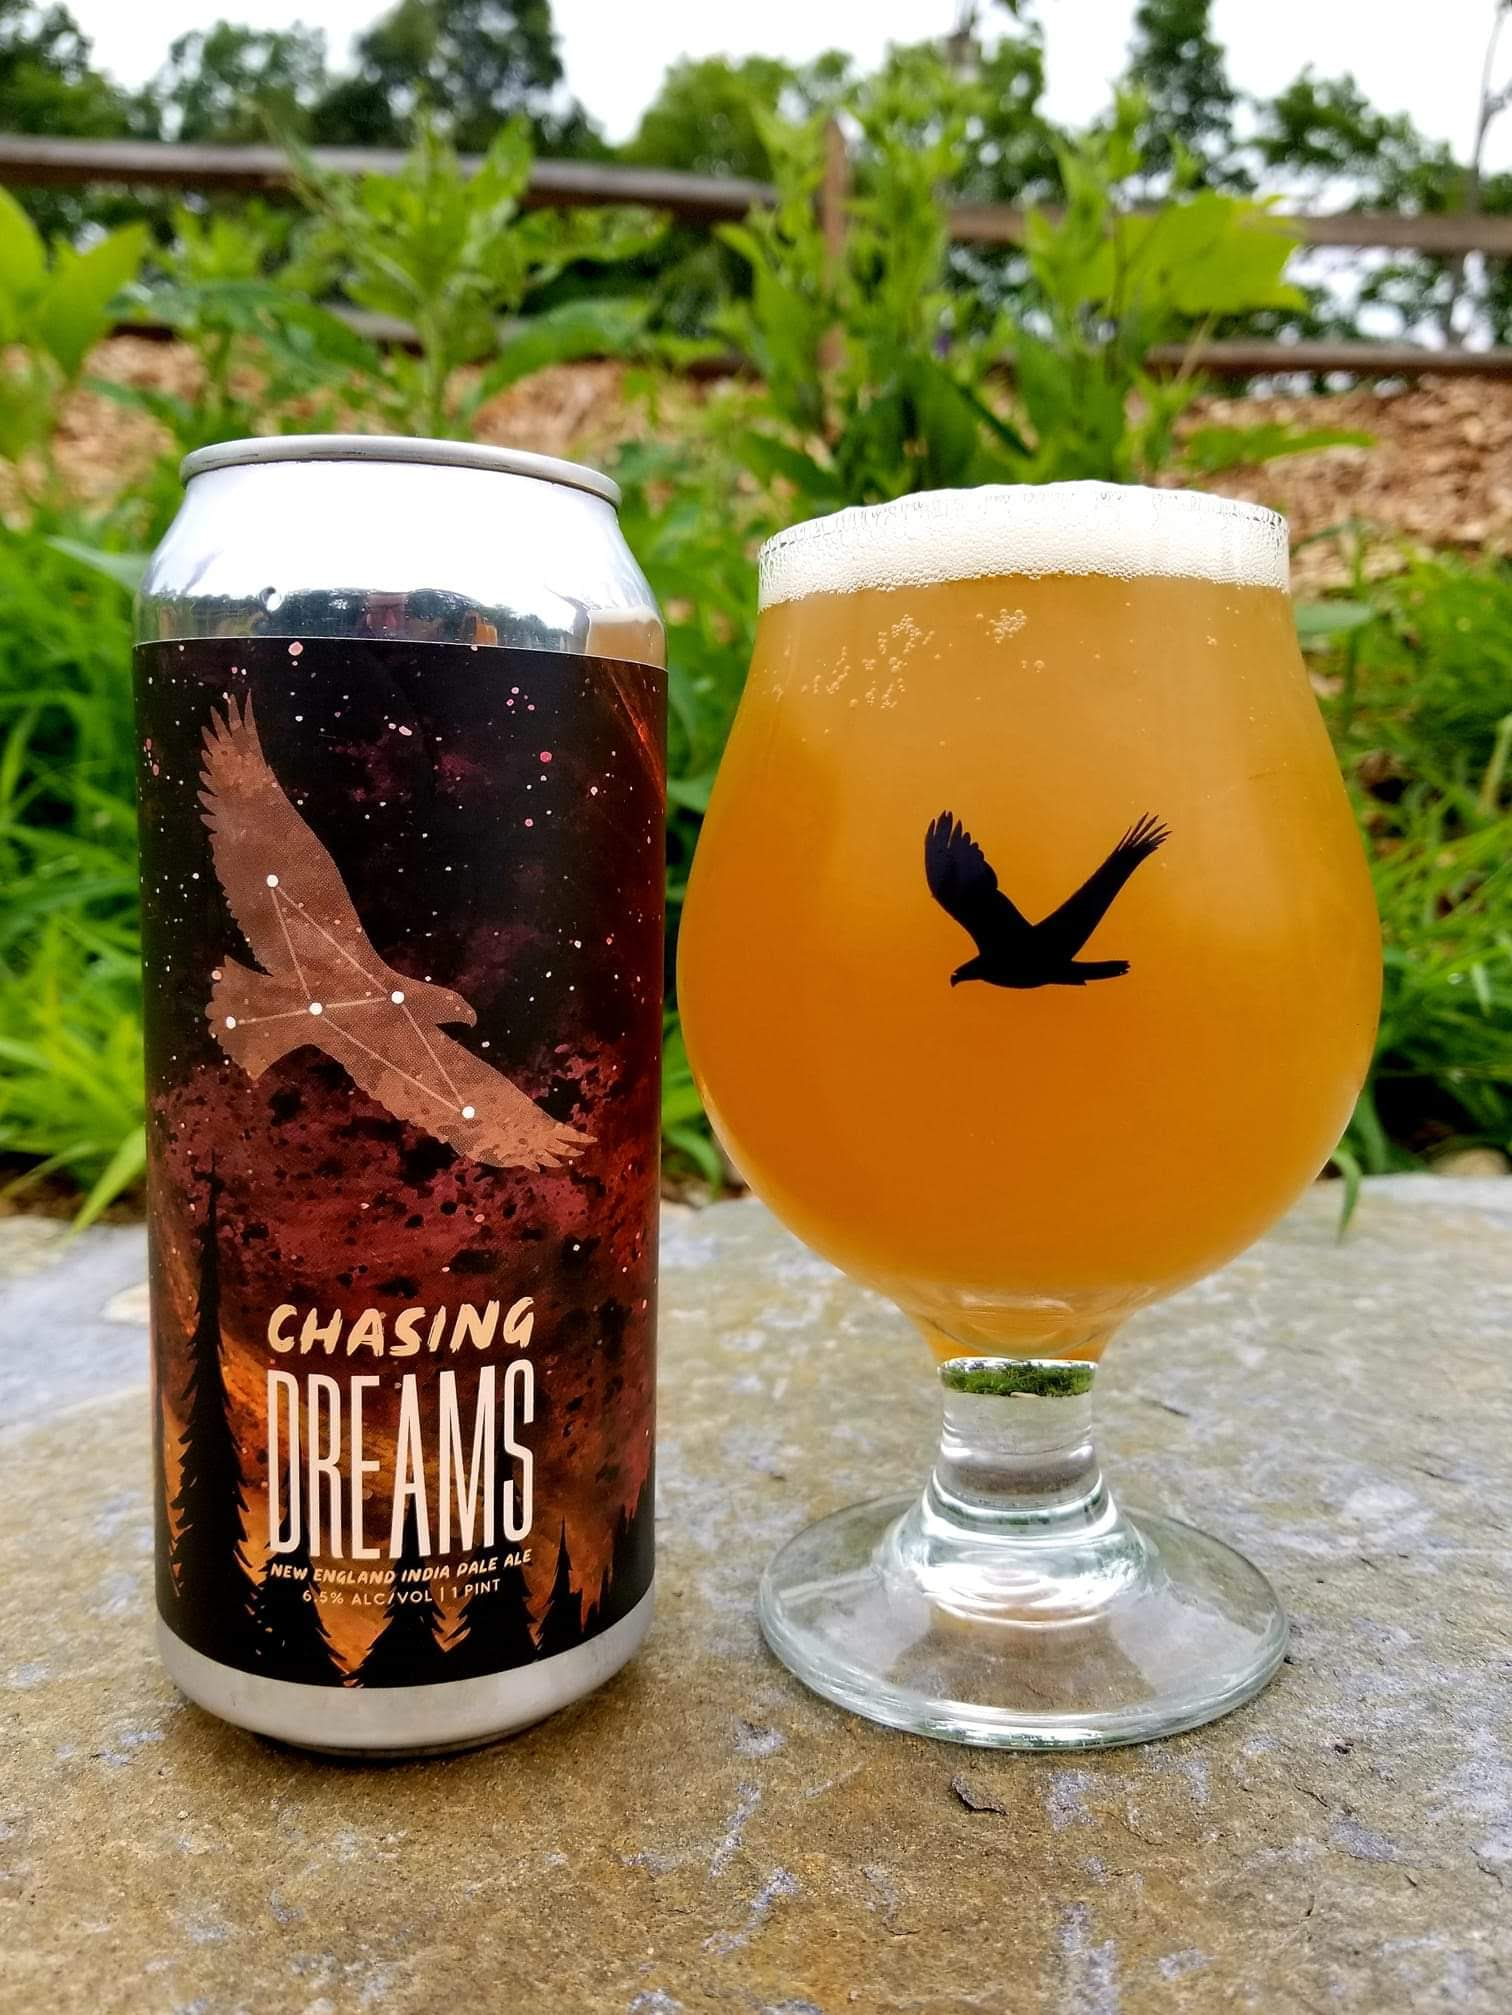 Chasing Dreams - This New England IPA provides a light body which makes it very drinkable. We pick up aromas and flavors of tropical fruits and mandarin oranges.